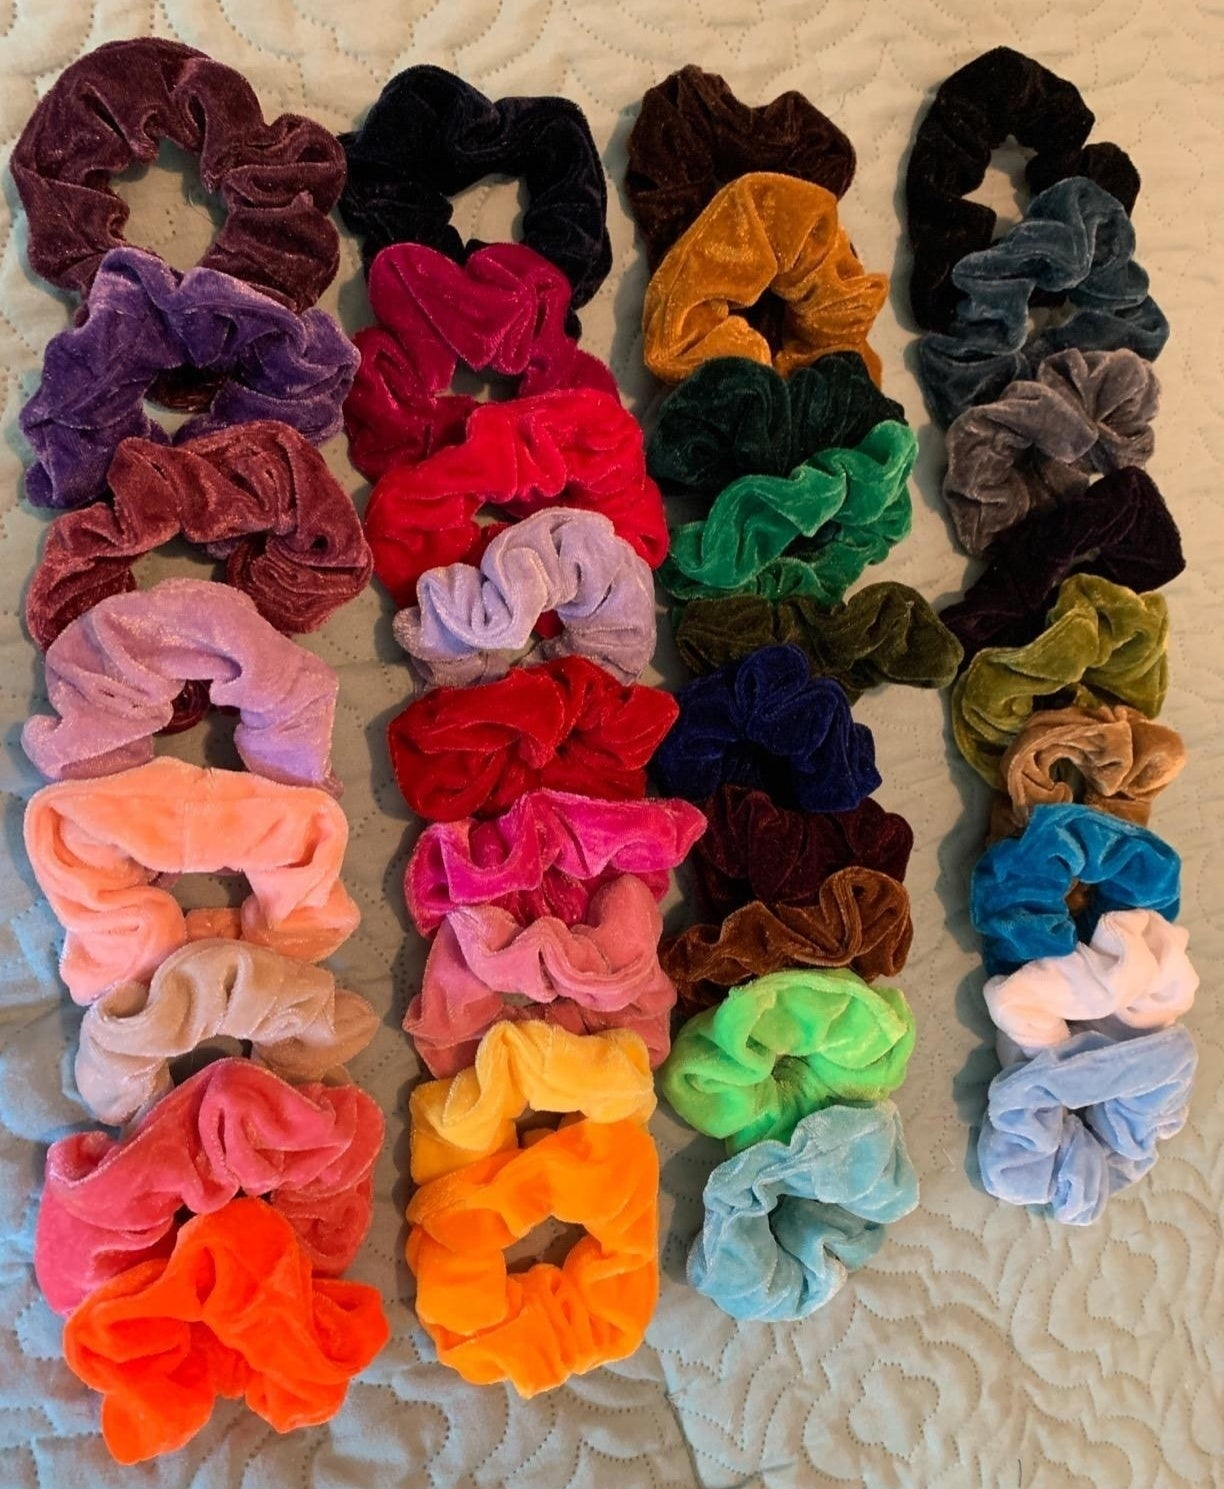 A bunch of scrunchies in various colors.